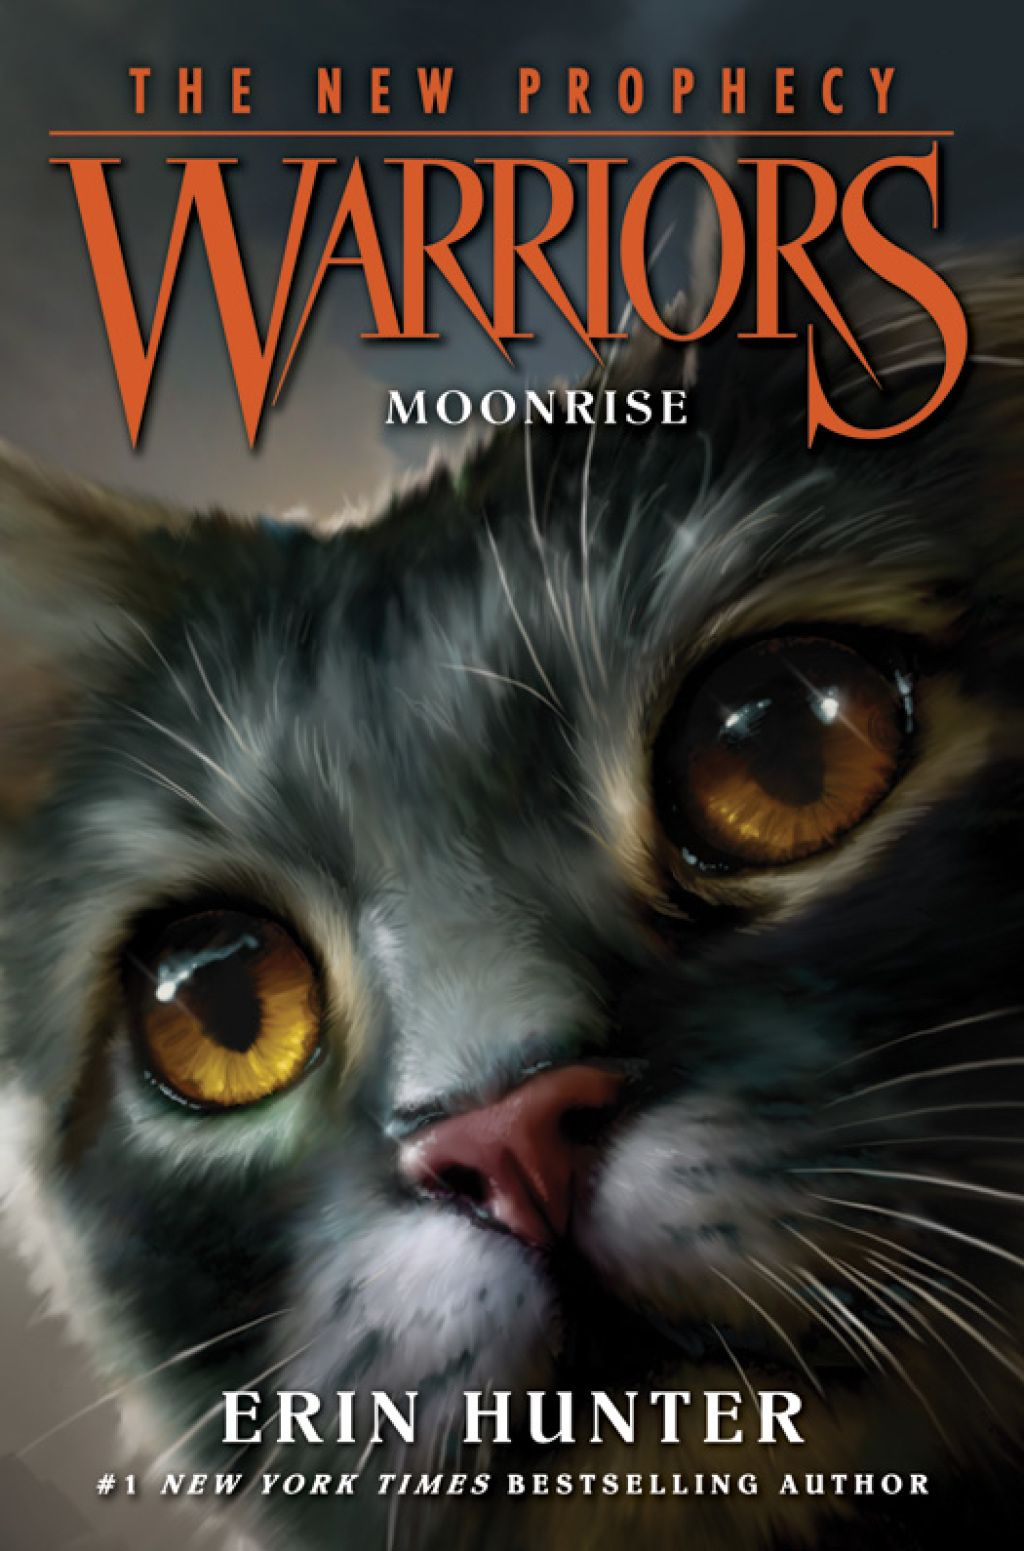 Warriors The New Prophecy 2 Moonrise (eBook) (With